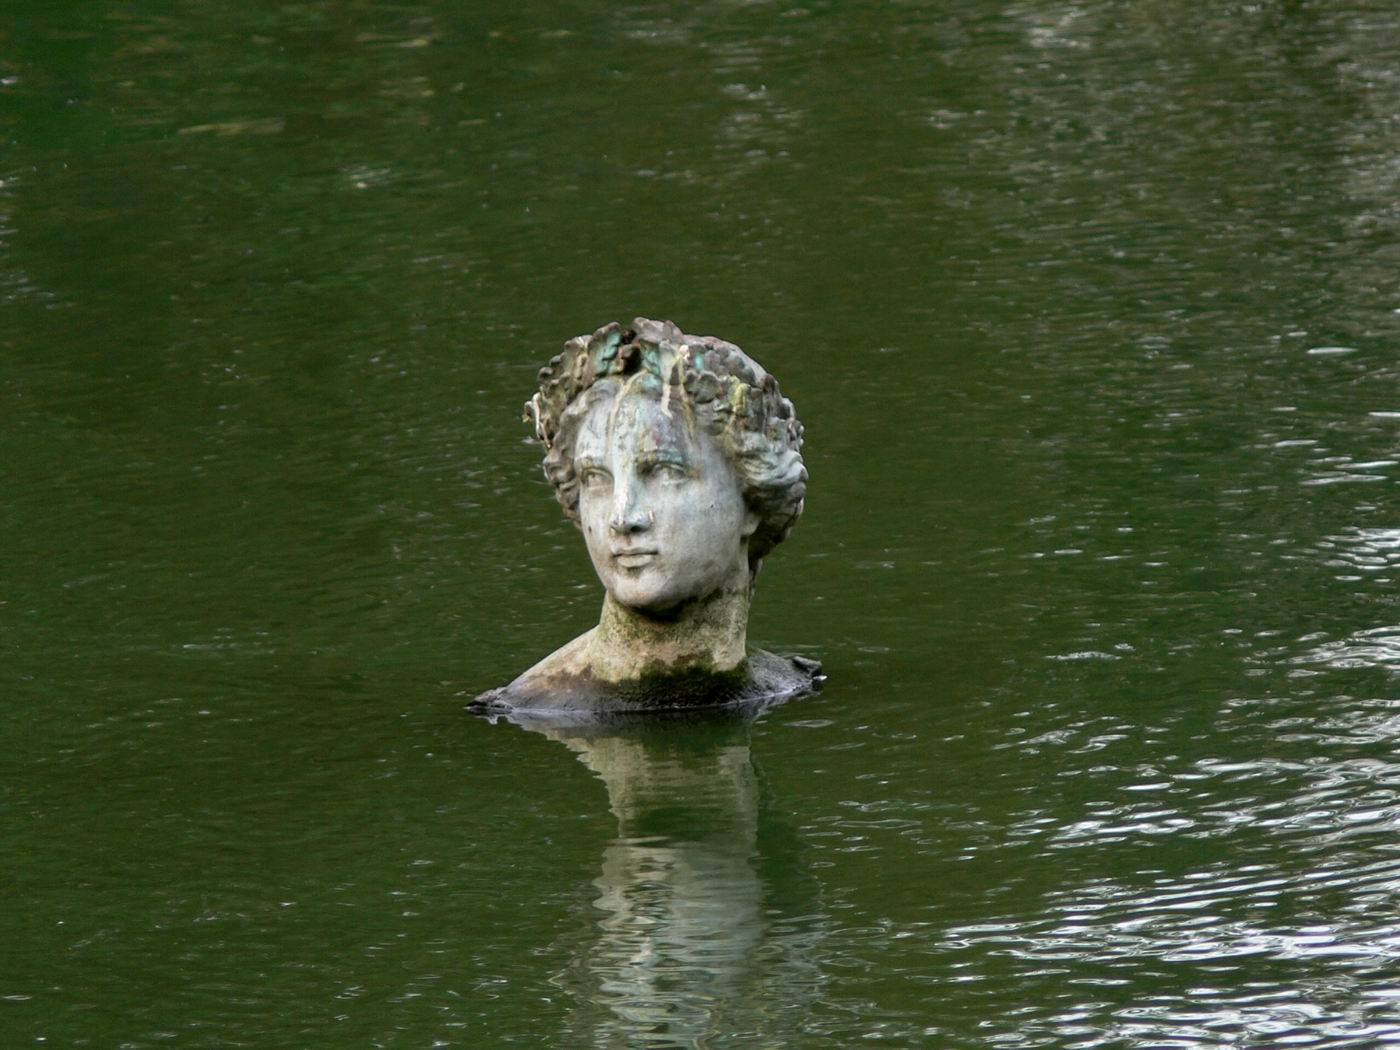 Statue in water